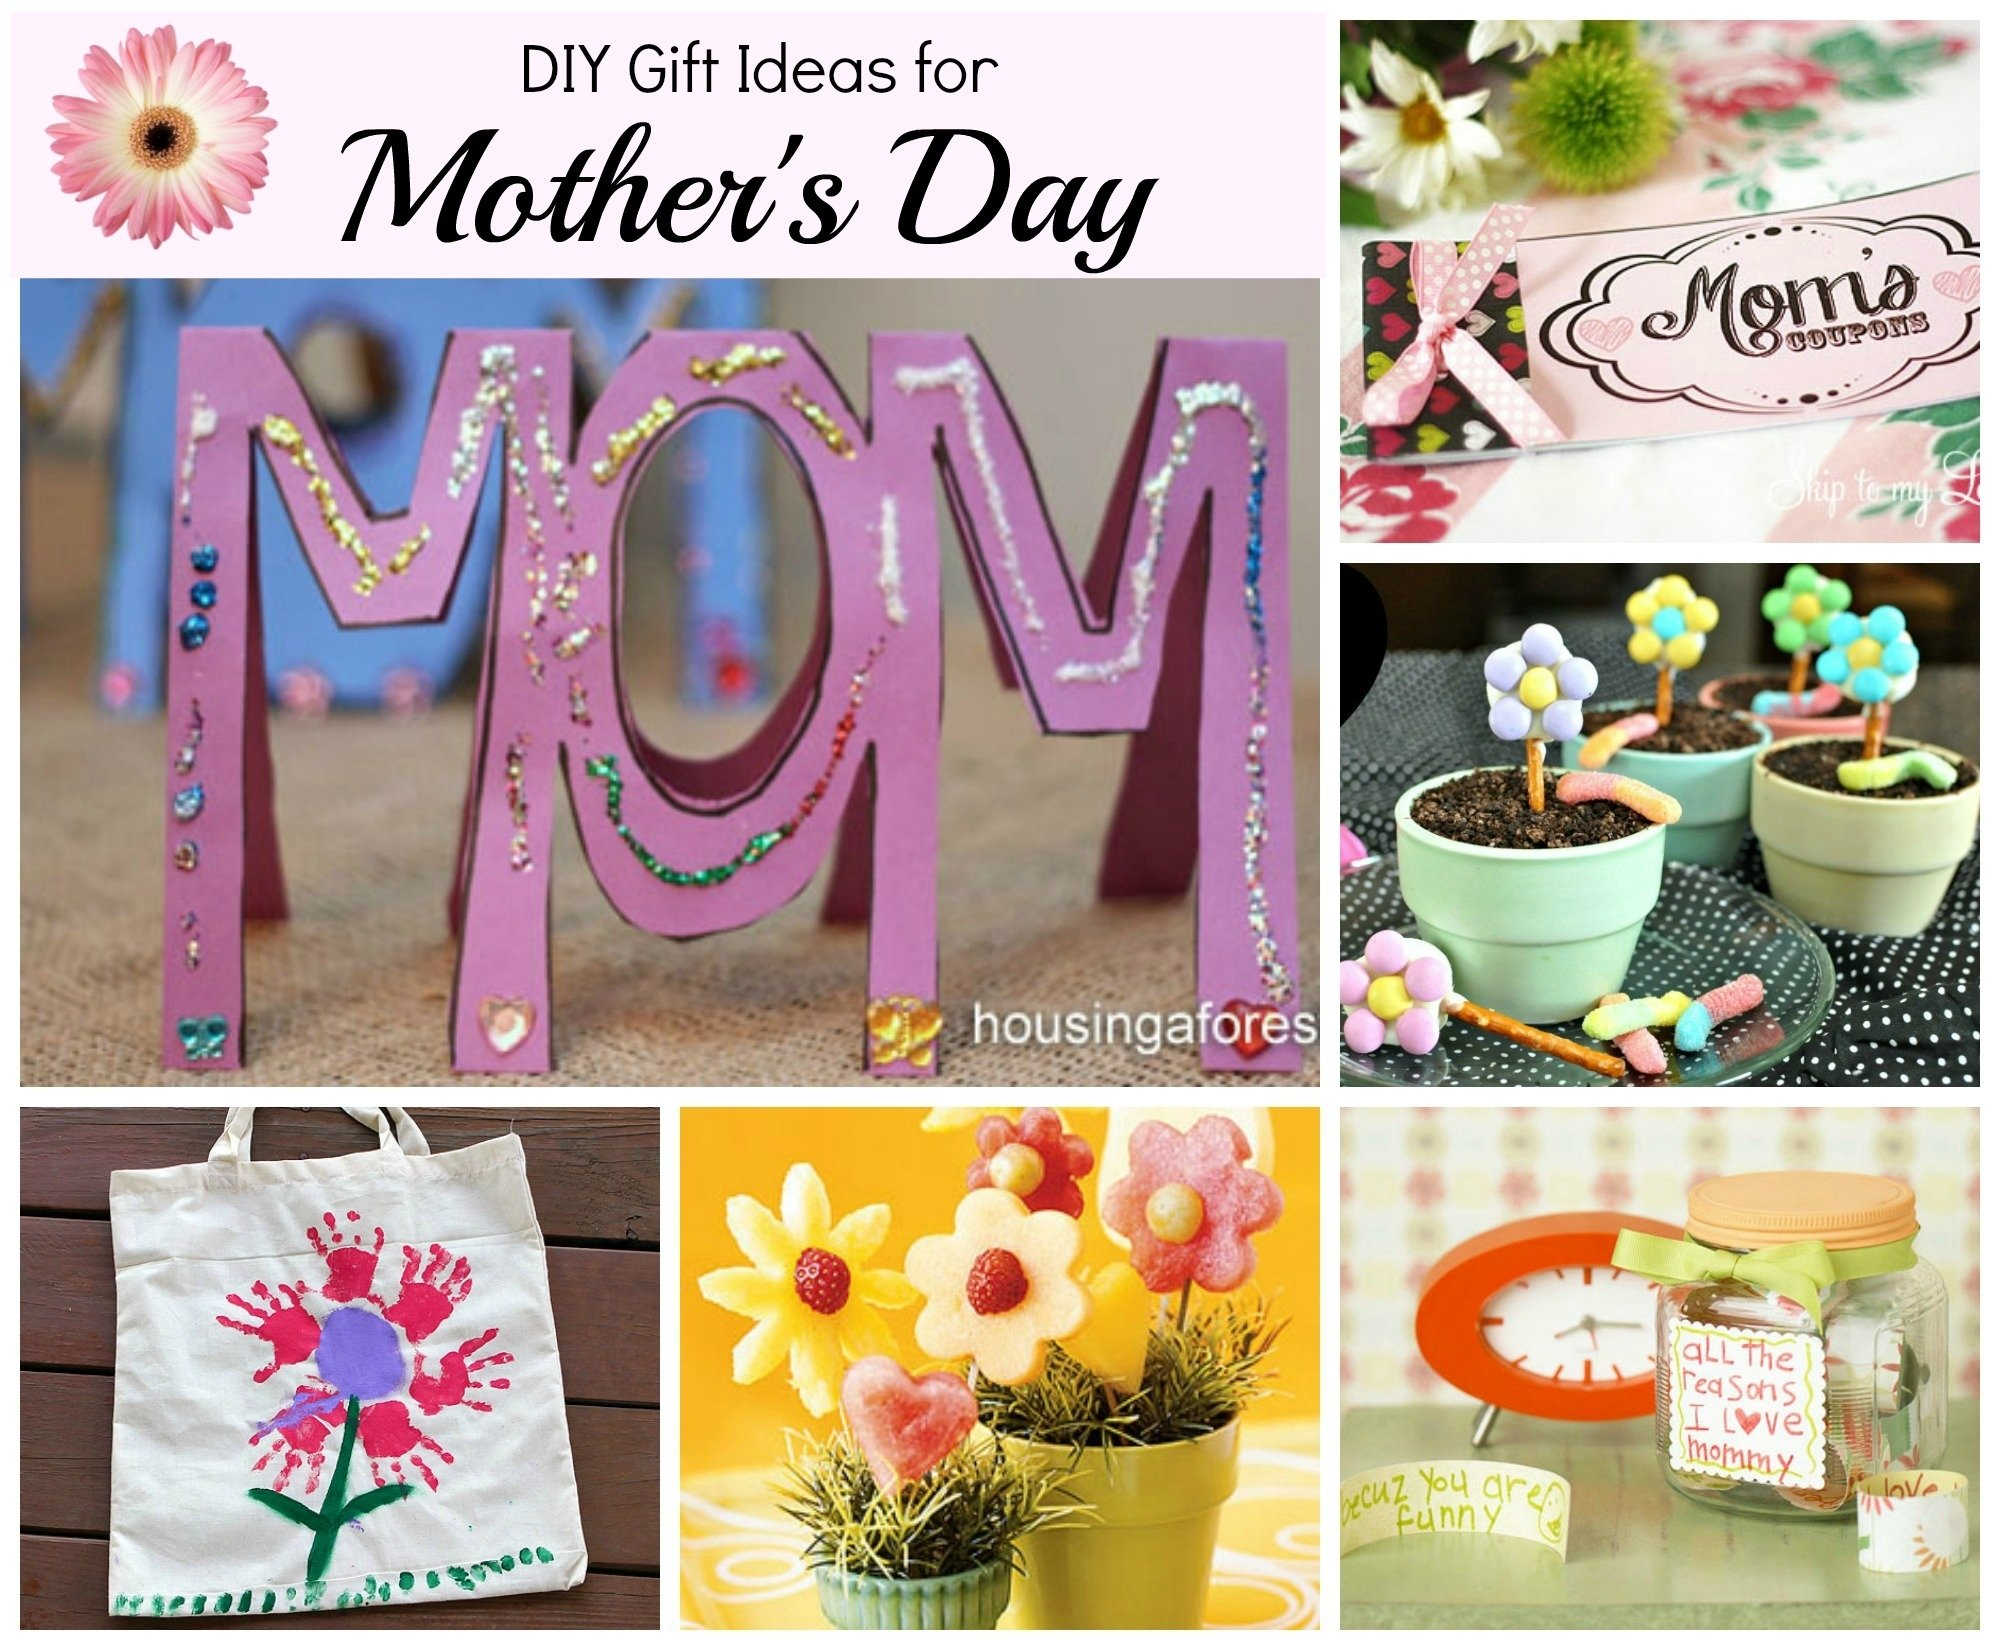 10 Most Recommended Good Gift Ideas For Mom mothers day gift ideas celebrating holidays 8 2021